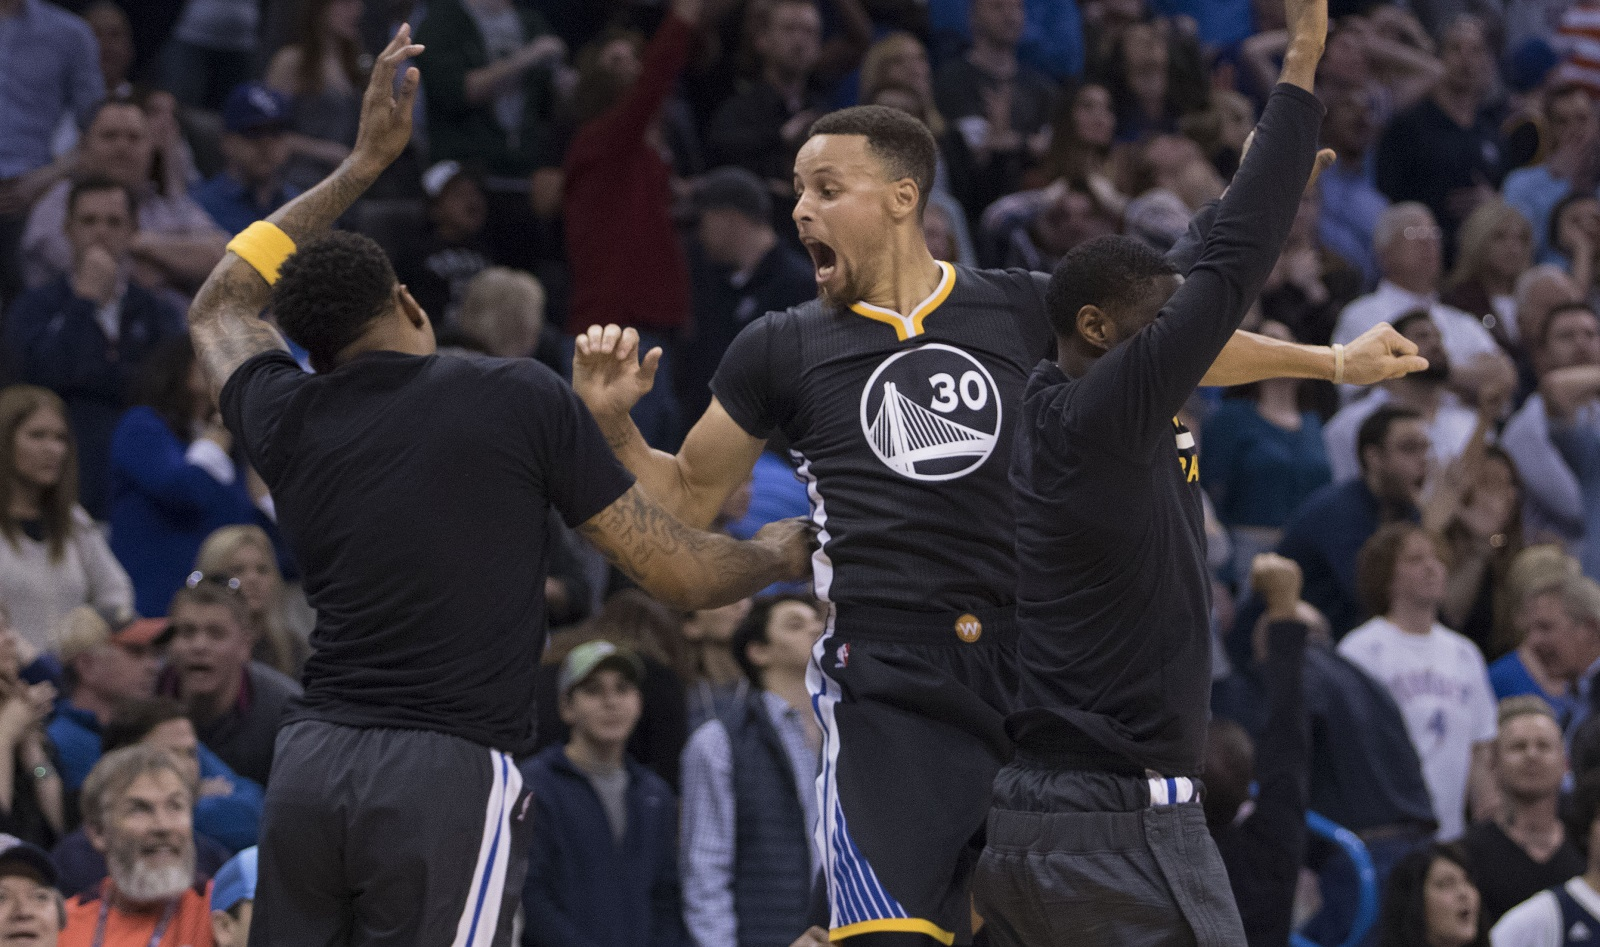 The Warriors' Stephen Curry celebrates after sinking the game-winning three-pointer against Oklahoma City in overtime on Saturday. (Getty Images)